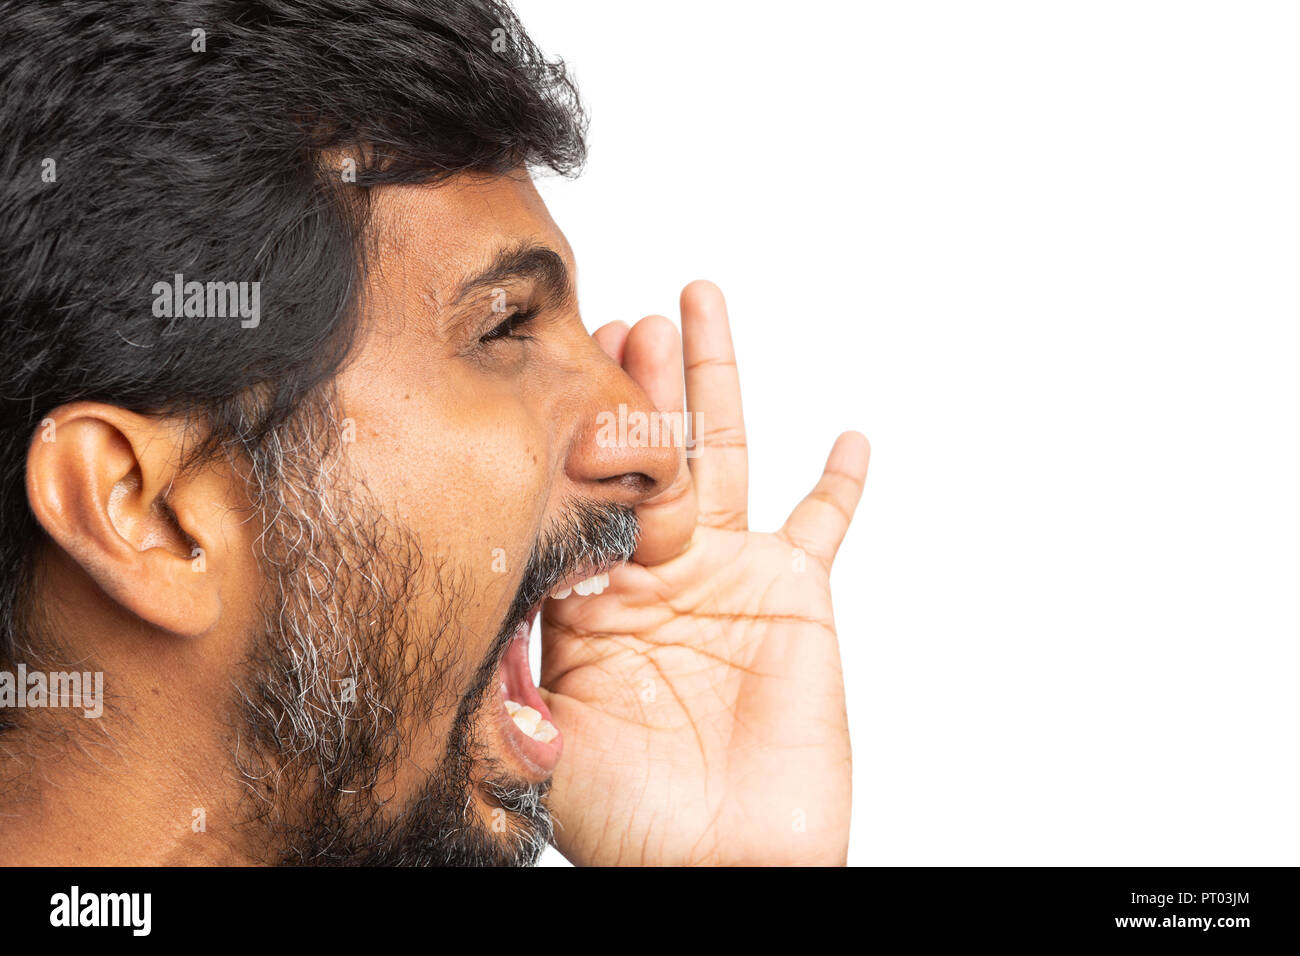 Close-up of indian man yelling as annoyed concept isolated on white background with blank copyspace for advertising - Stock Image